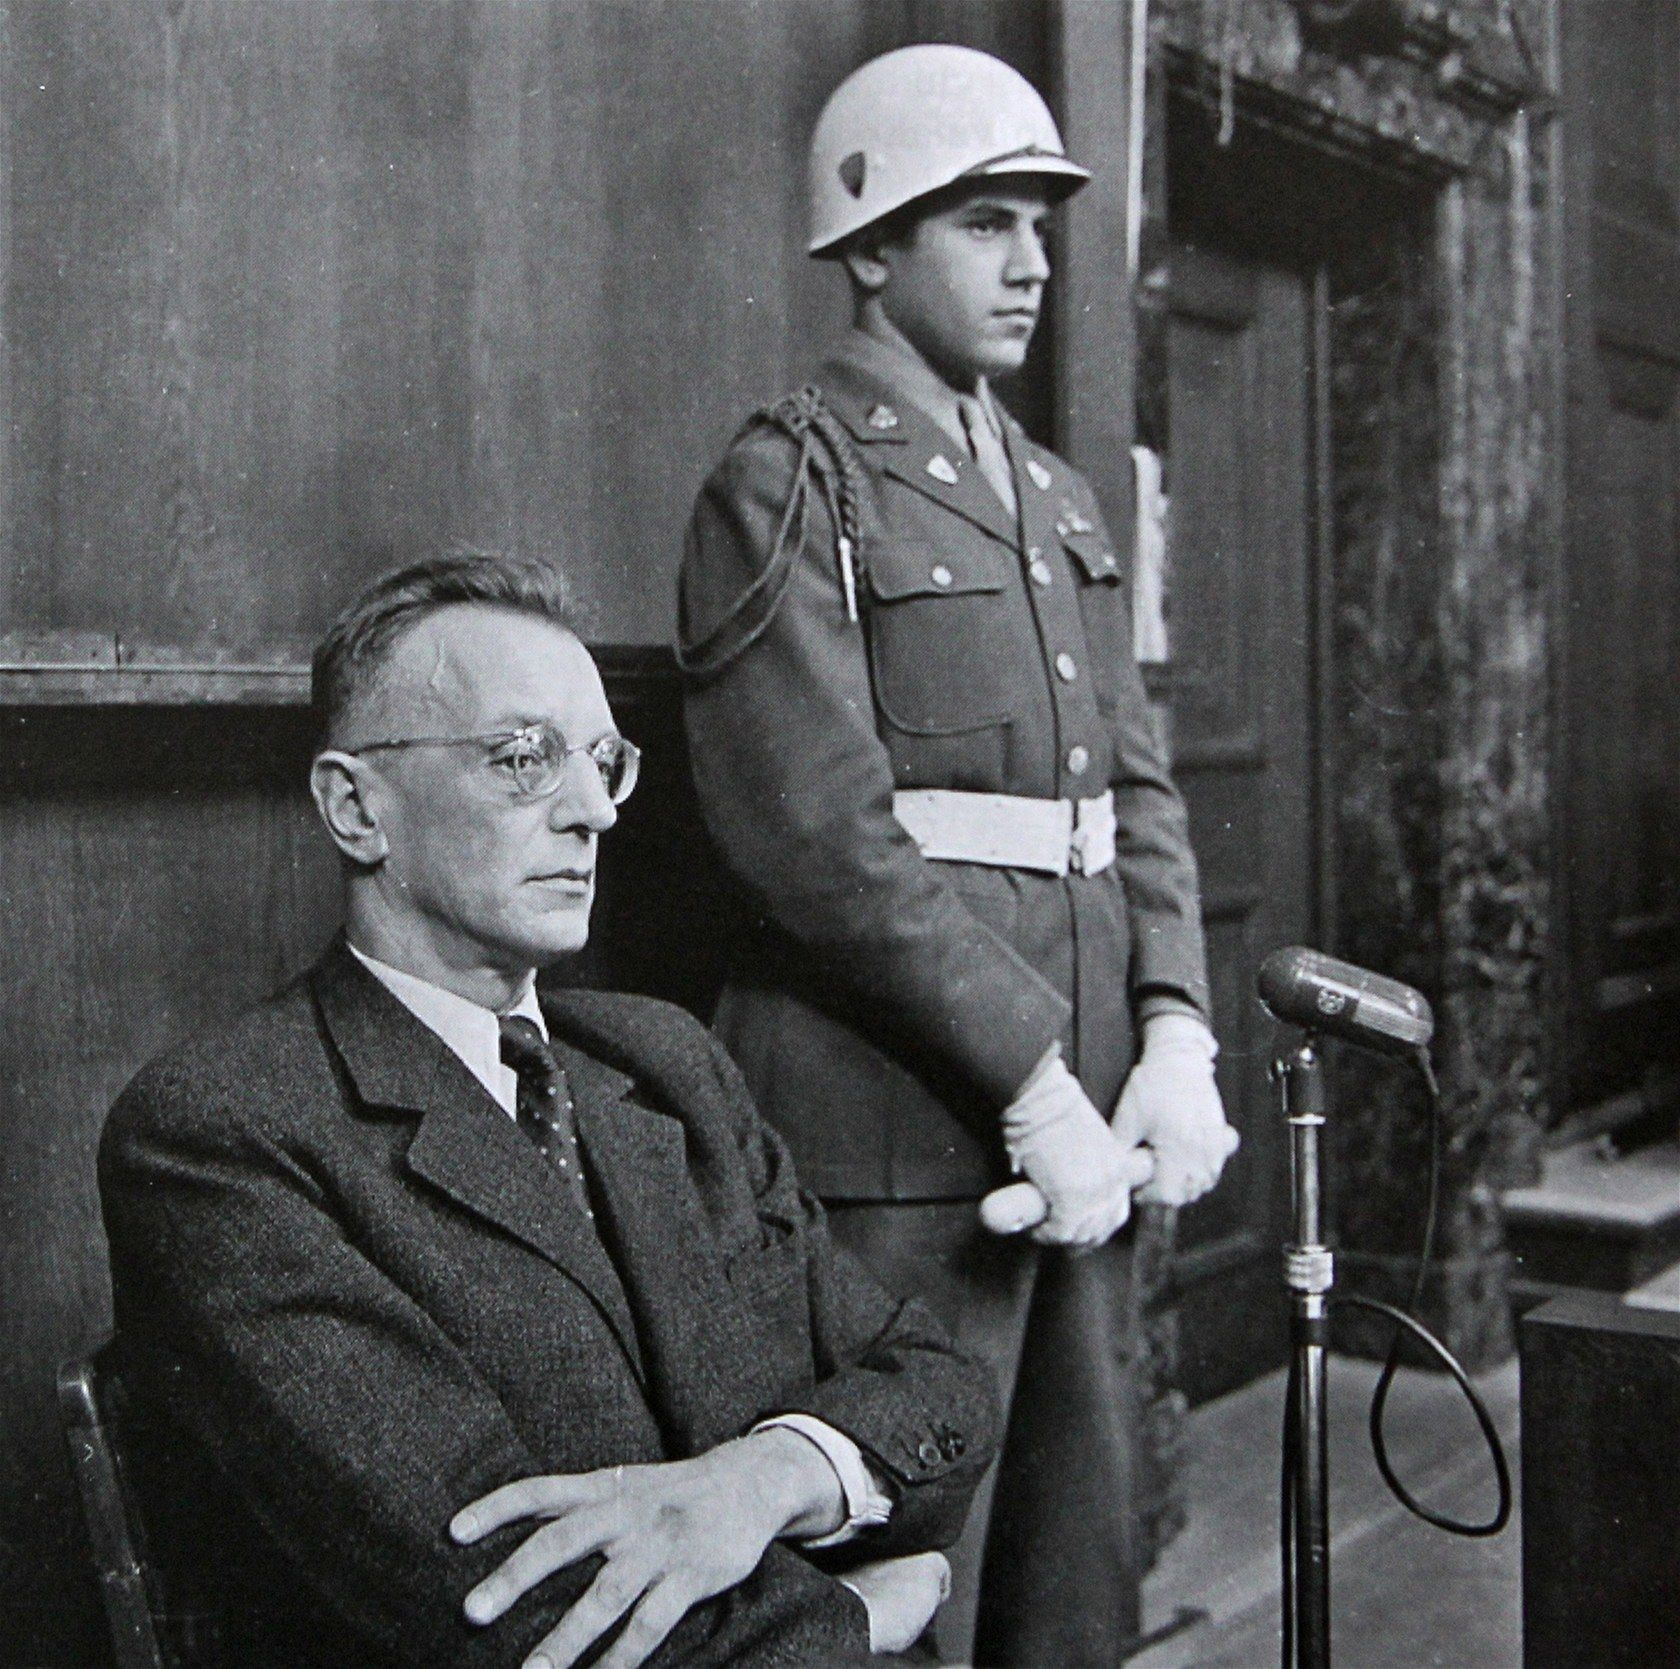 arthur seyss inquart at the nuremberg trials a guard  arthur seyss inquart at the nuremberg trials a guard 1946 he was a nazi lawyer who held high offices in and occupied and wa